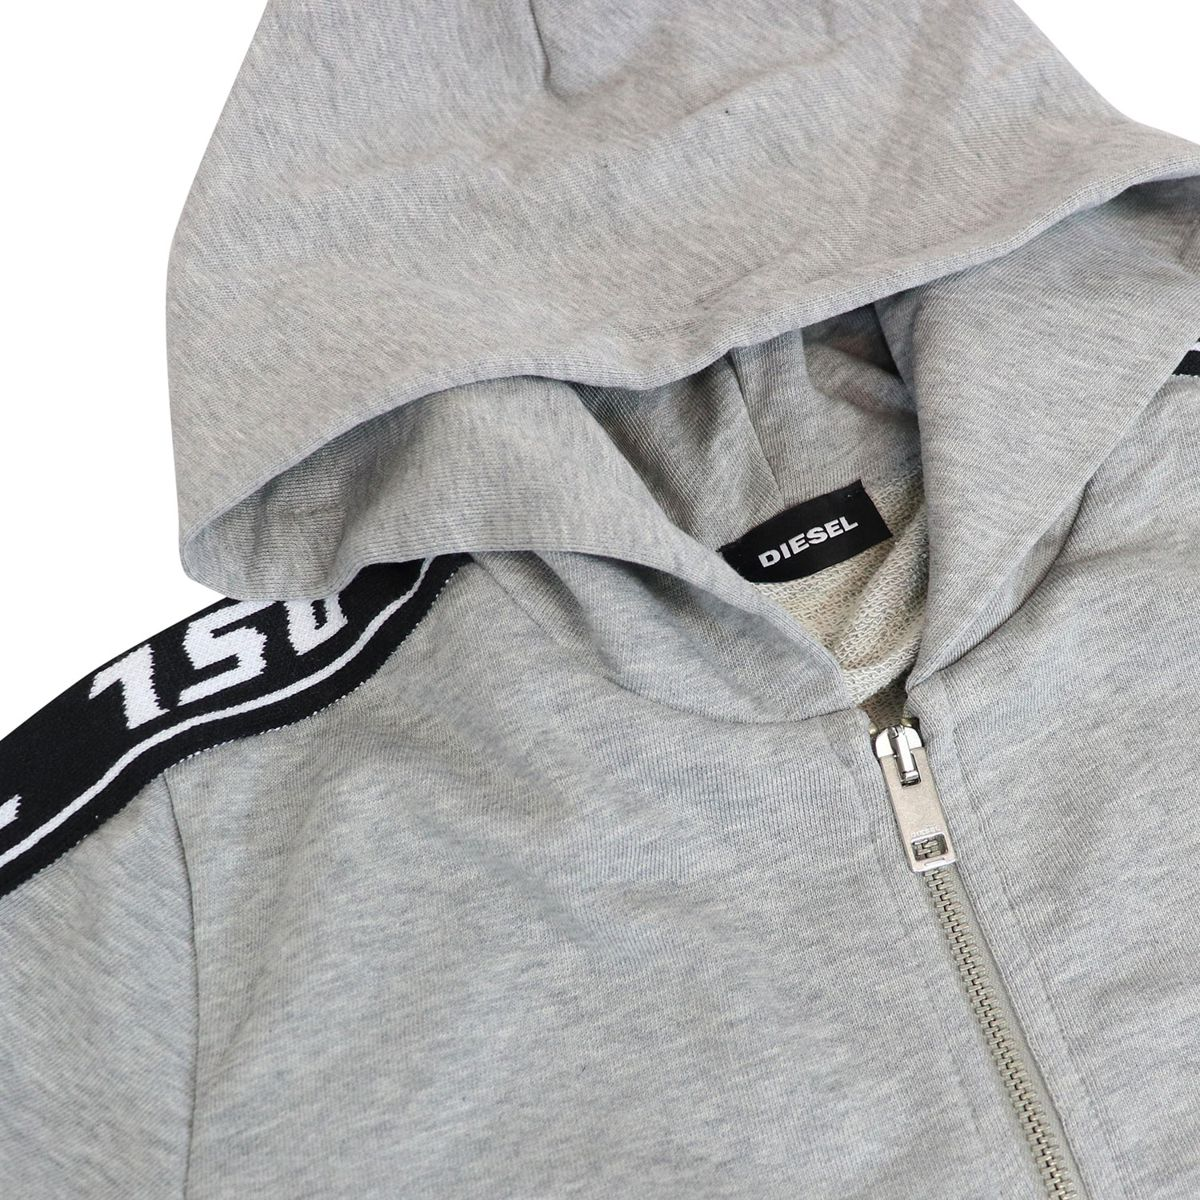 Cotton sweatshirt with hood and branded stripes Grey Diesel